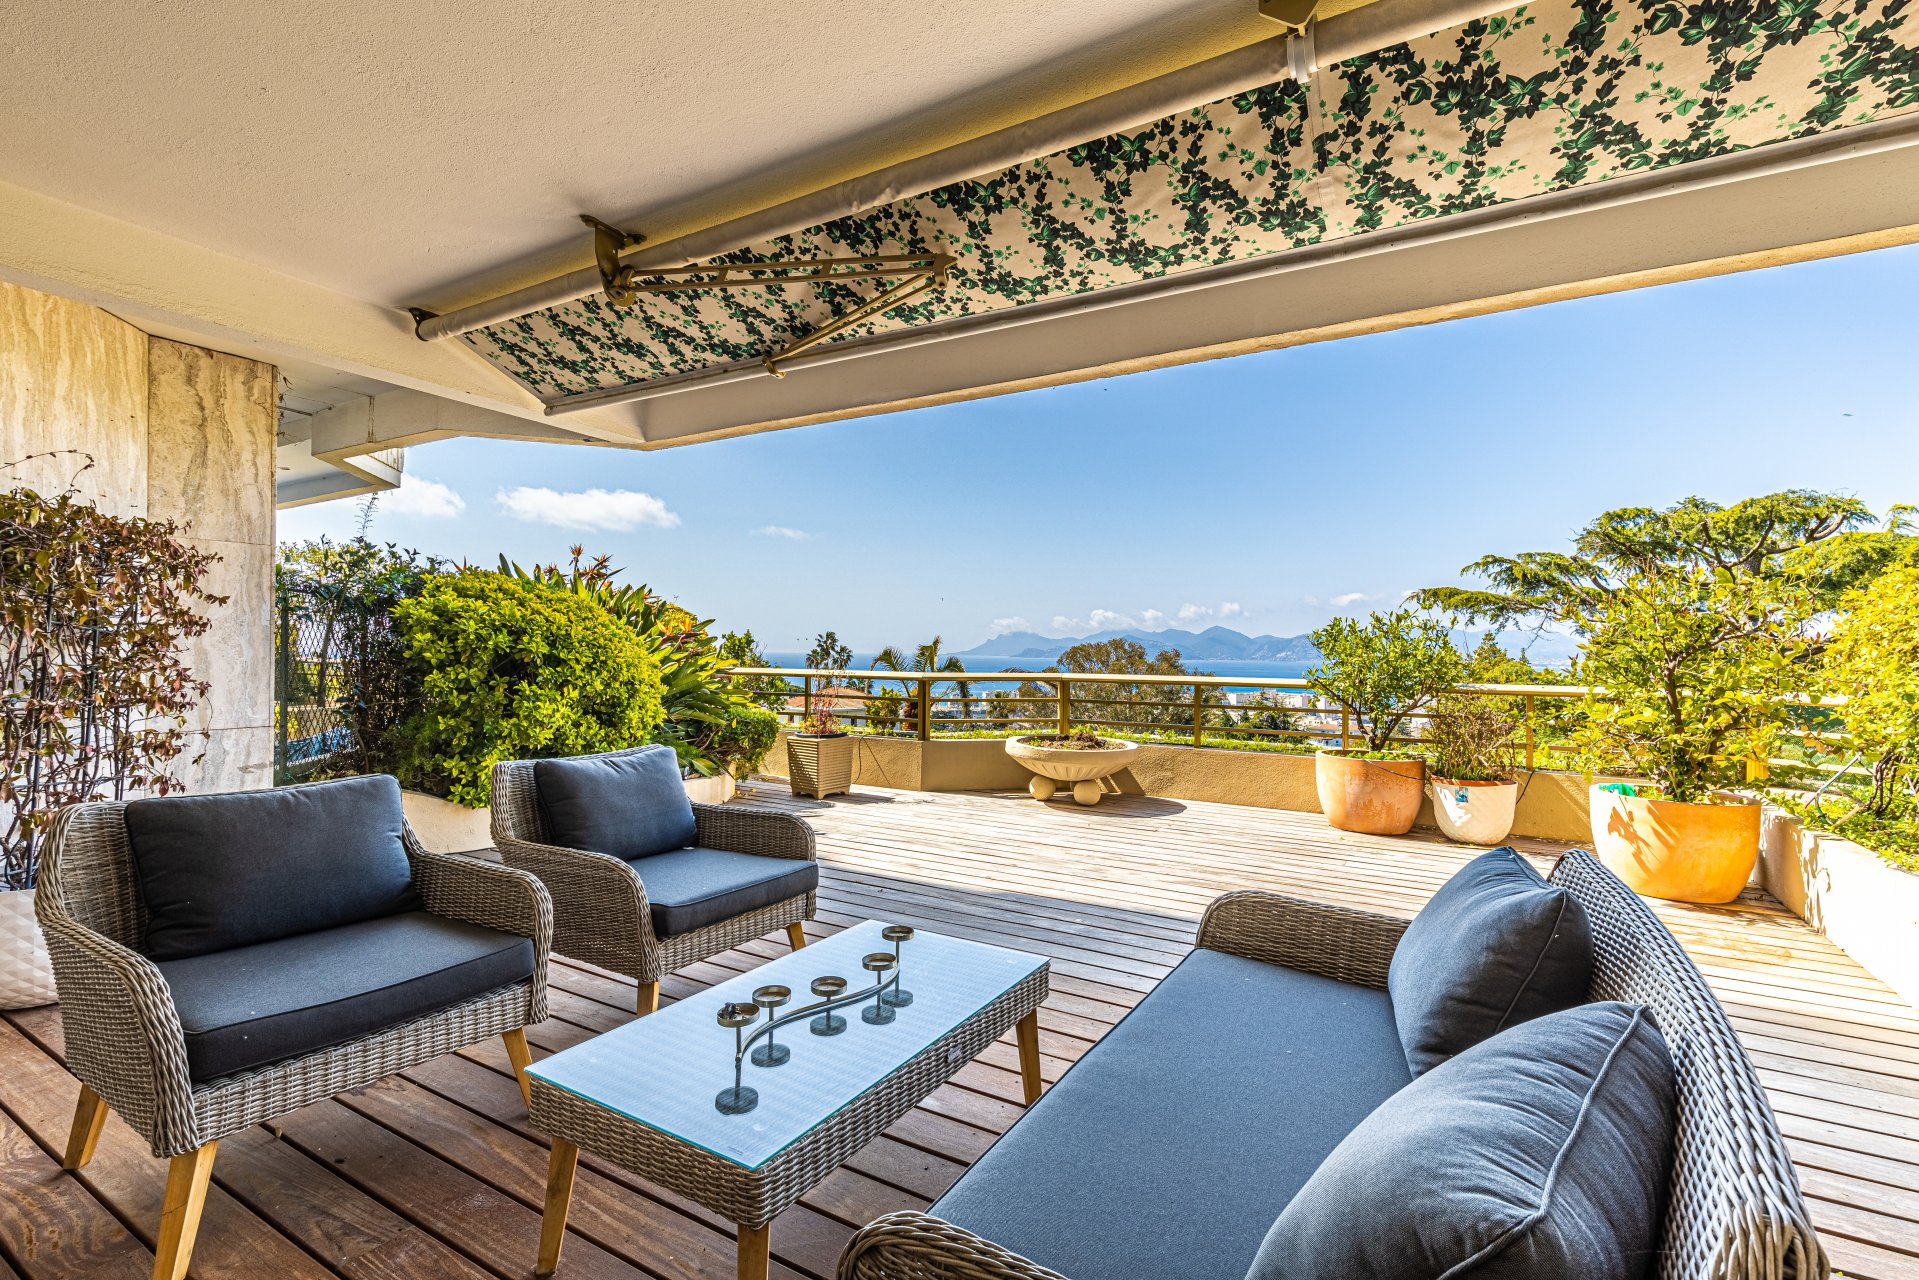 Three-bed, terraces, caretaker, pool, sea view, amenities by foot, Montfleury in Cannes